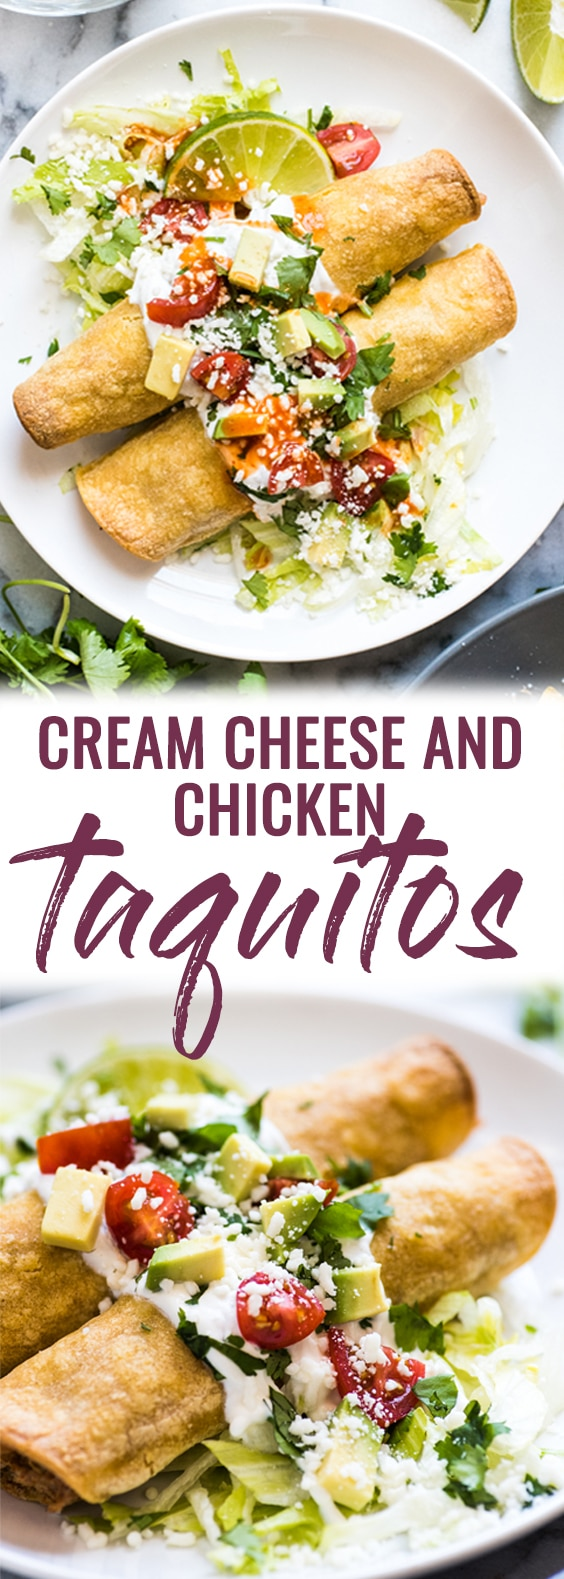 Thesebaked Chicken Taquitos are stuffed with seasoned shredded chicken, cream cheese, diced green chiles, black beans and corn. Perfect for any weeknight meal! (freezer friendly, gluten free) #mexican #taquitos #tacos